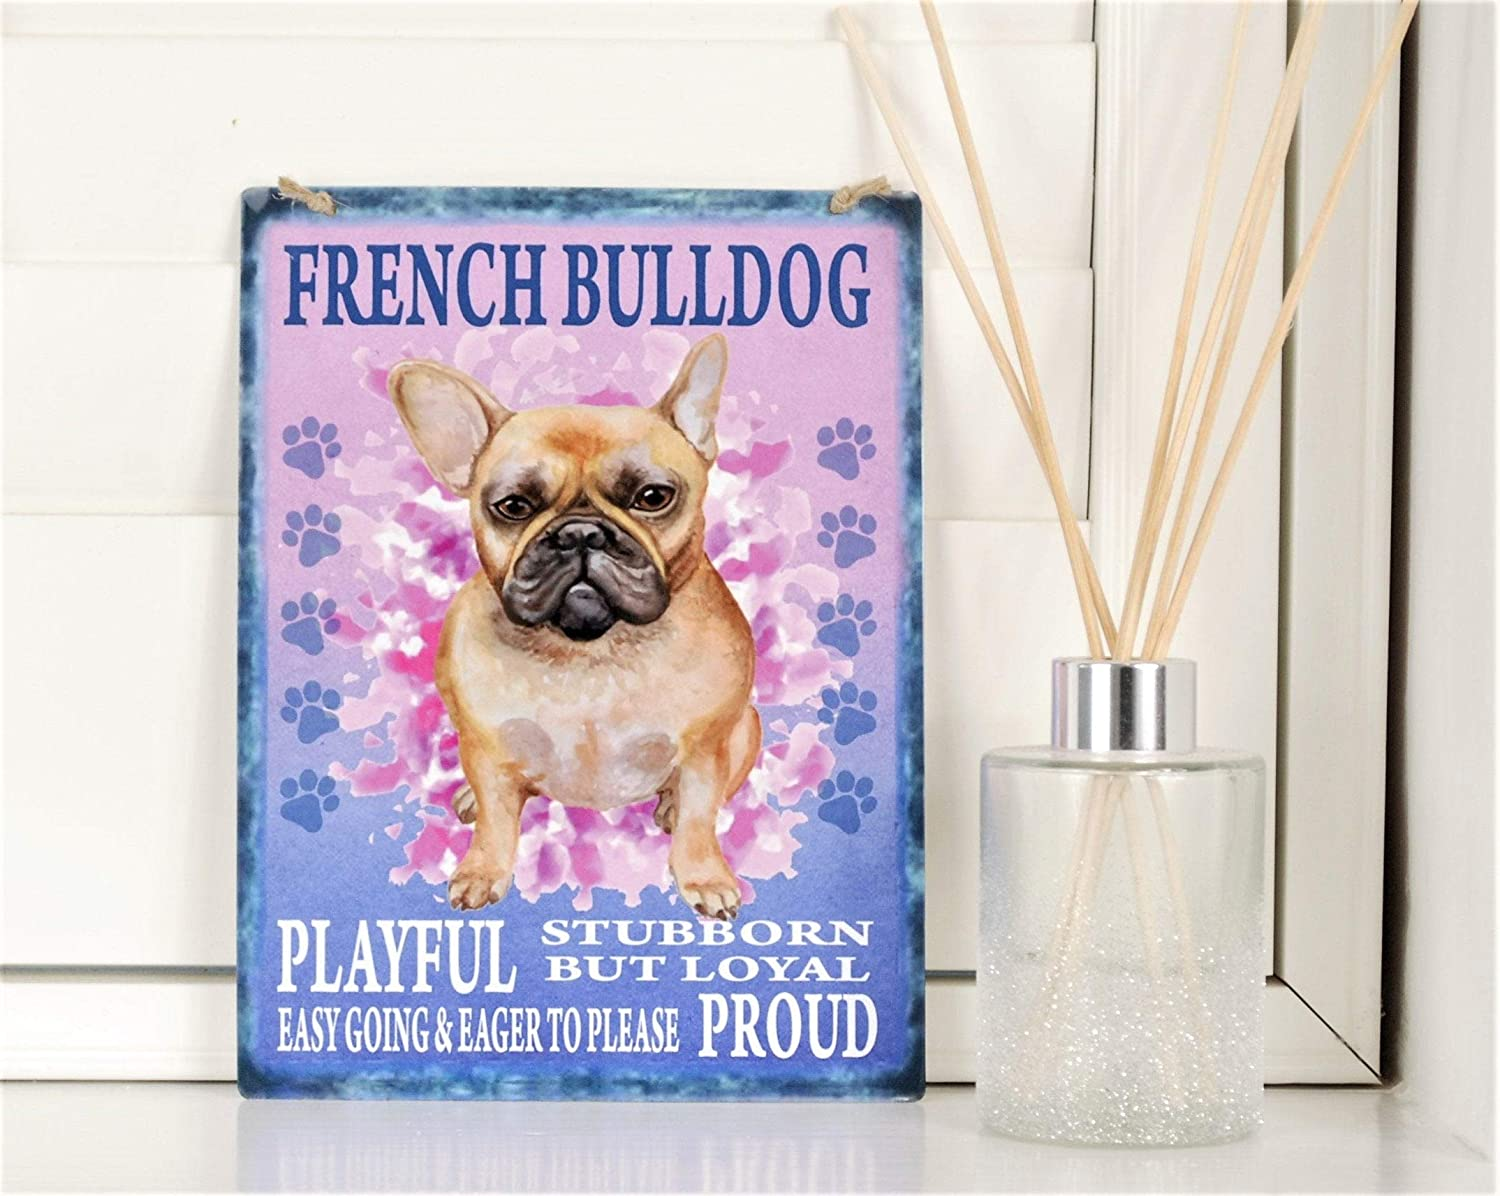 Diuangfoong French Bulldog Dog Breed Sign Shabby Chic Retro Metal Vintage Hanging Metal Plaque - 12×16 inches